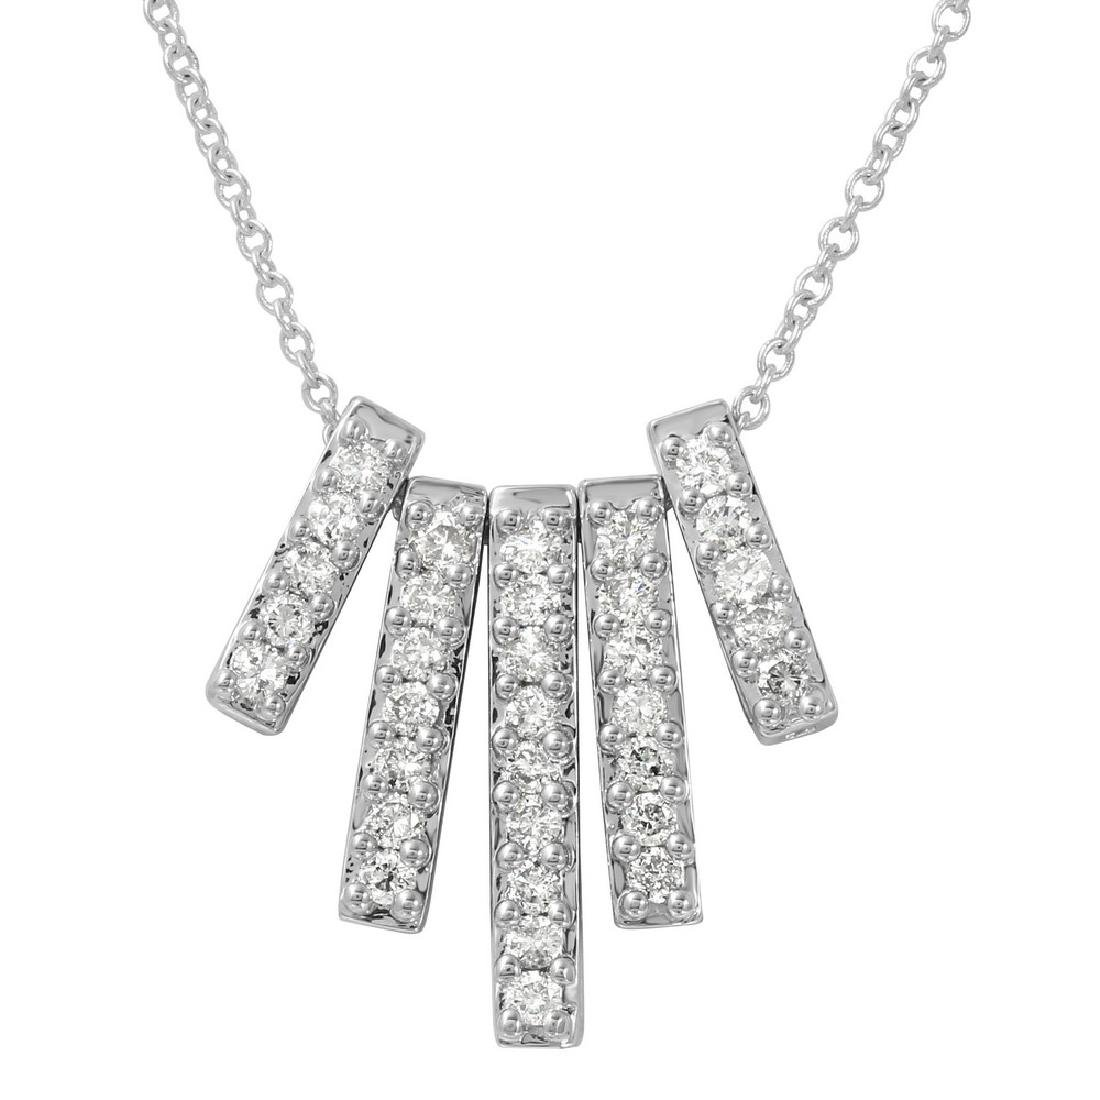 Genuine 0.5 TCW 14K White Gold Ladies Necklace